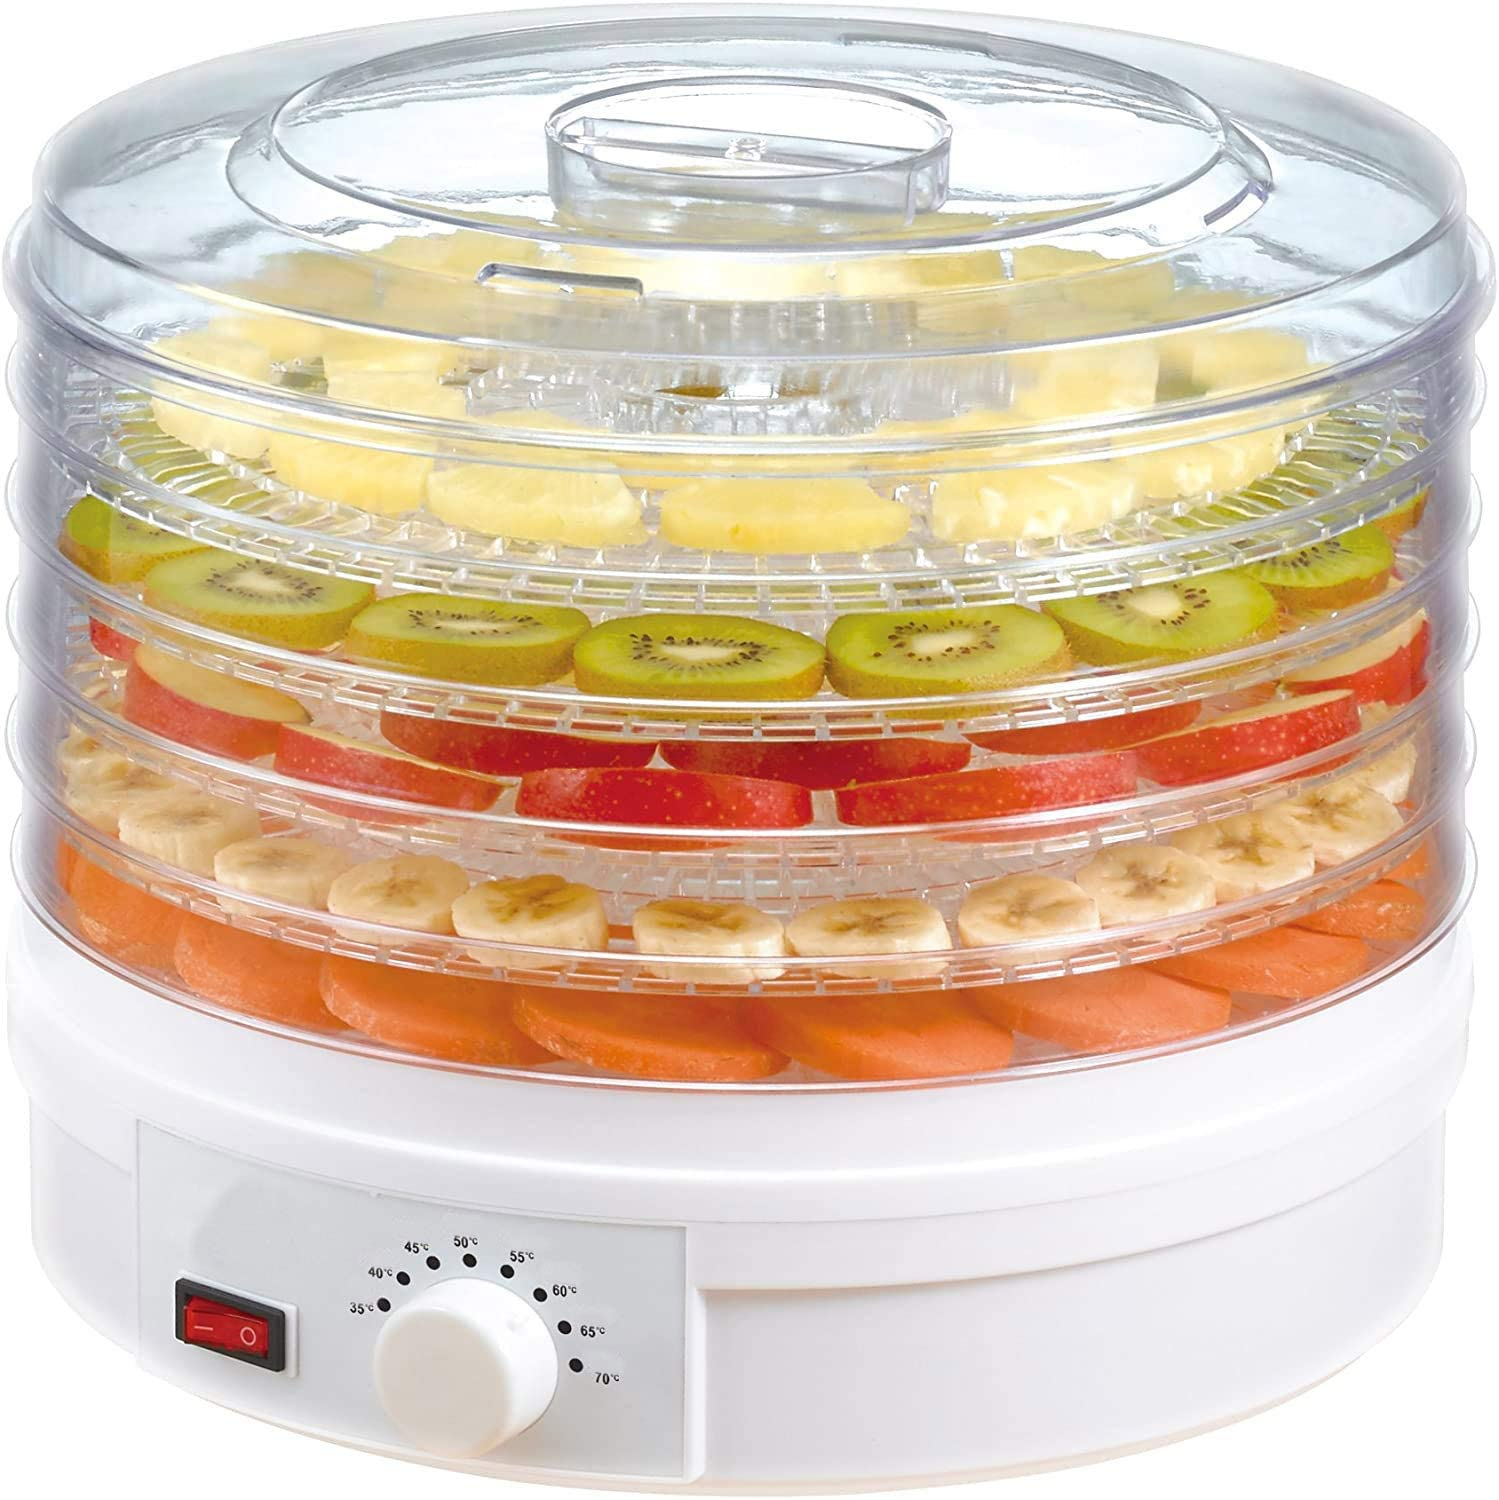 Electric Countertop Food Dehydrator - 350W Food Preserve - Beef Jerky?Fish Poultry?Fruit Vegetables Dryer with 5 Stackable Trays & Temperature Control Knob